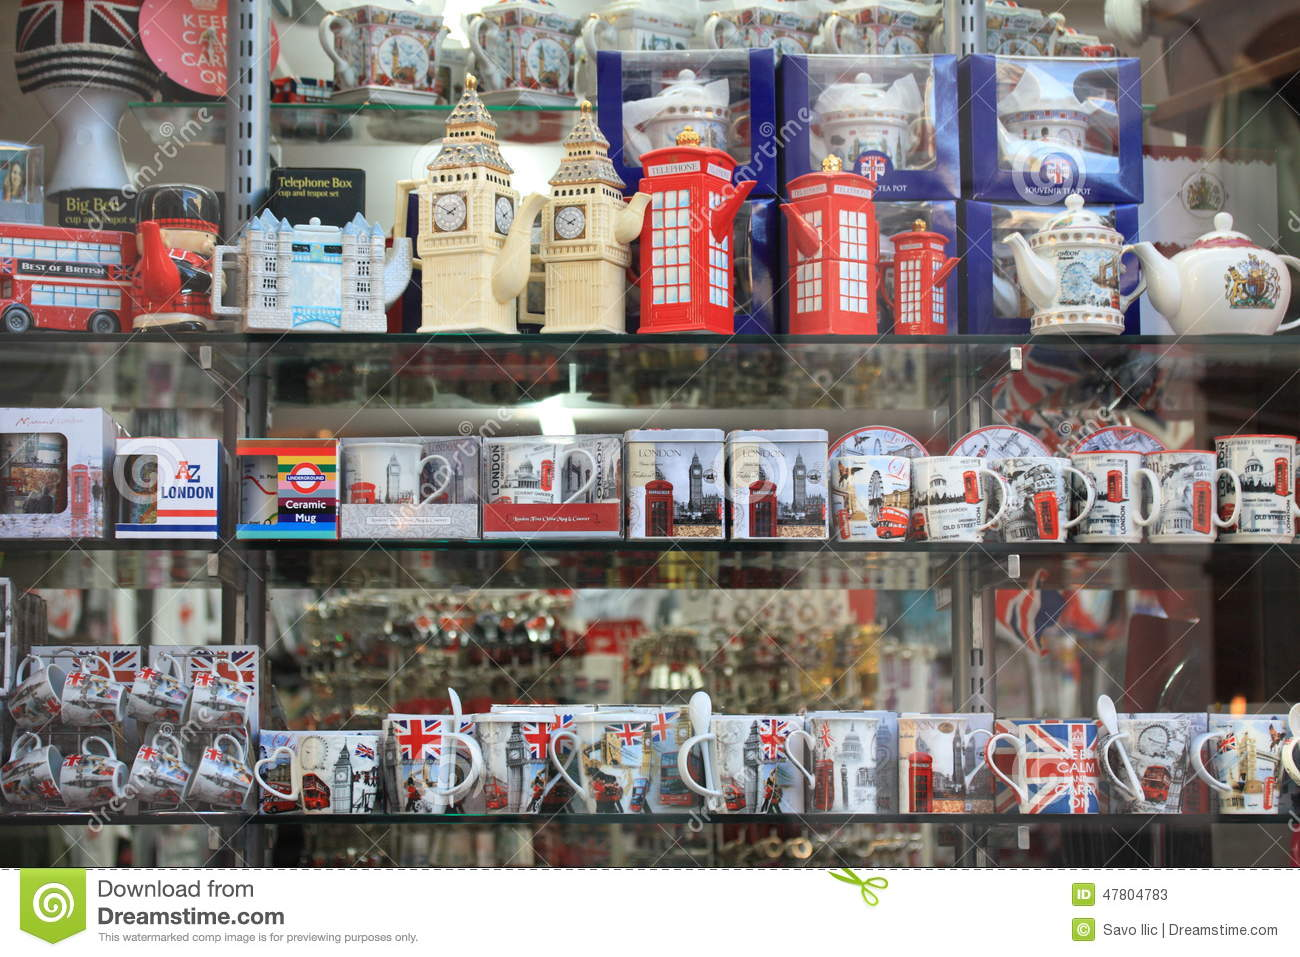 Souvenirs editorial stock photo. Image of sale, heritage ...